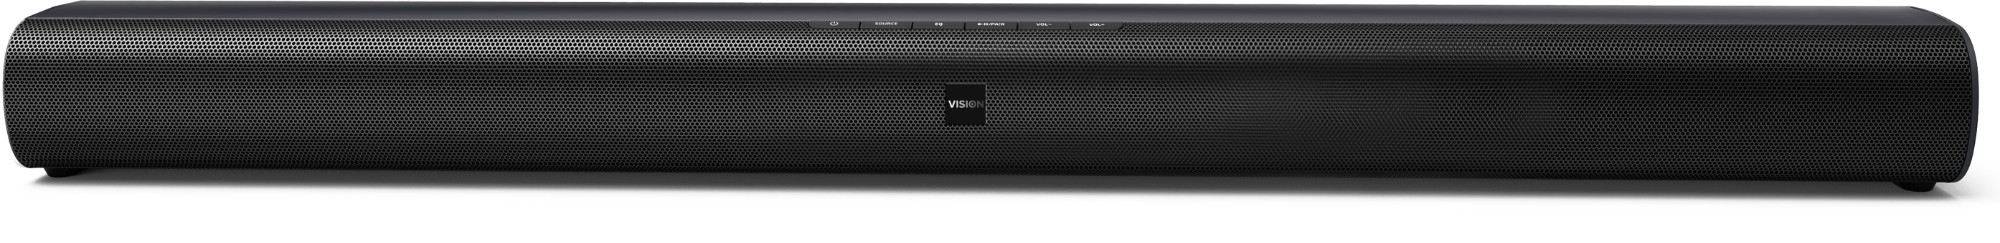 Vision SB-900P soundbar speaker 30 W Black